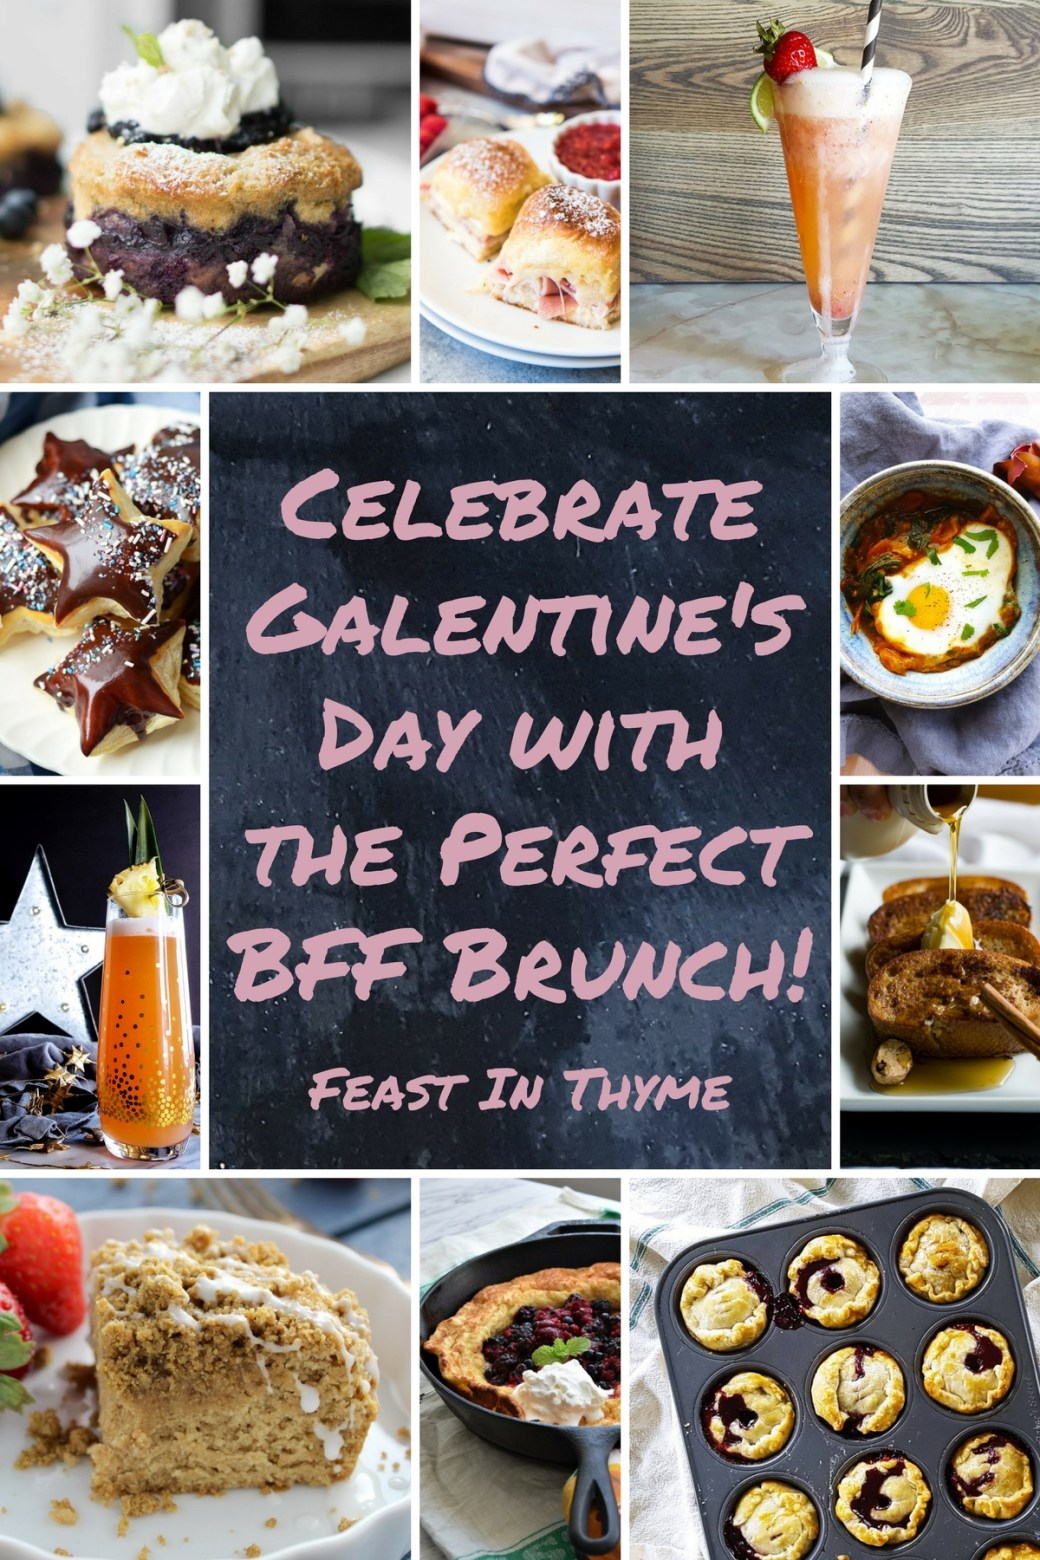 Celebrate Galentine's Day with the Perfect BFF Brunch! #galentinesday #brunch #recipes | FeastInThyme.com